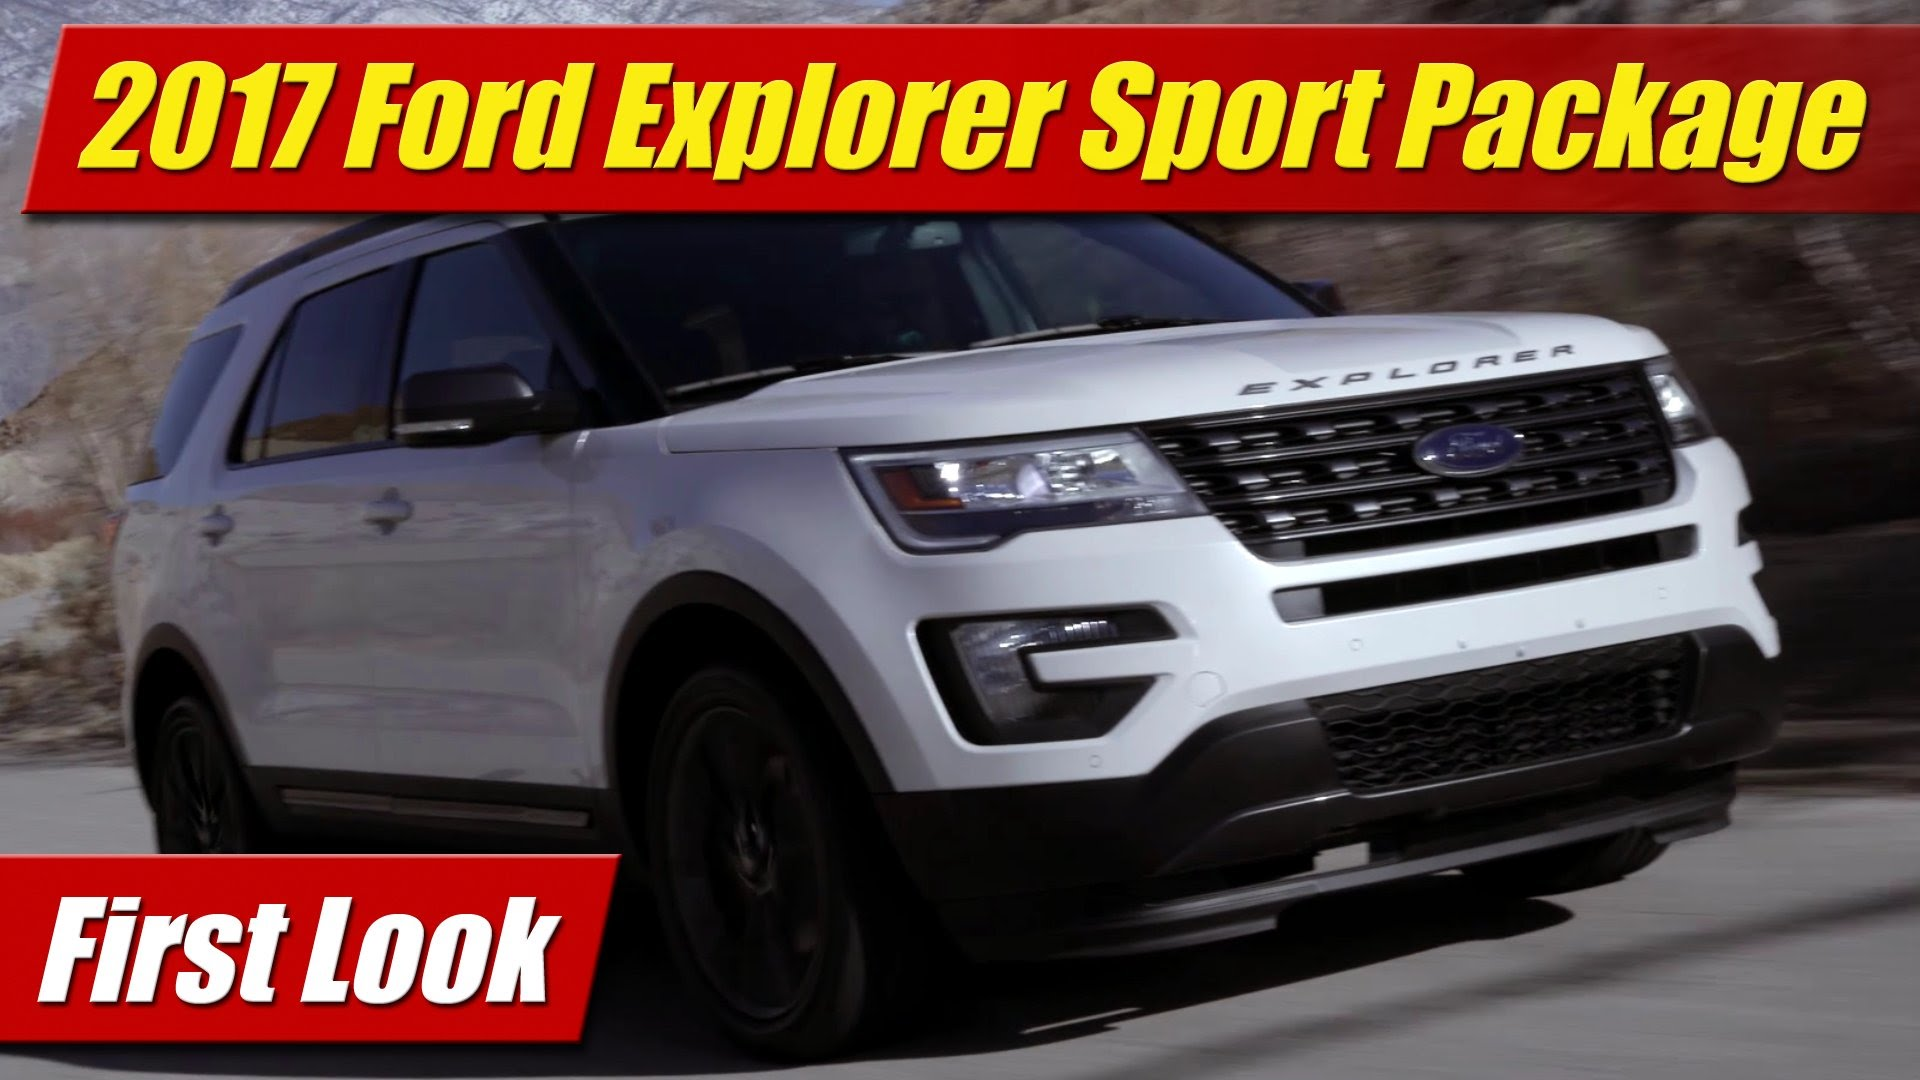 First Look 2017 Ford Explorer Xlt Sport Earance Package